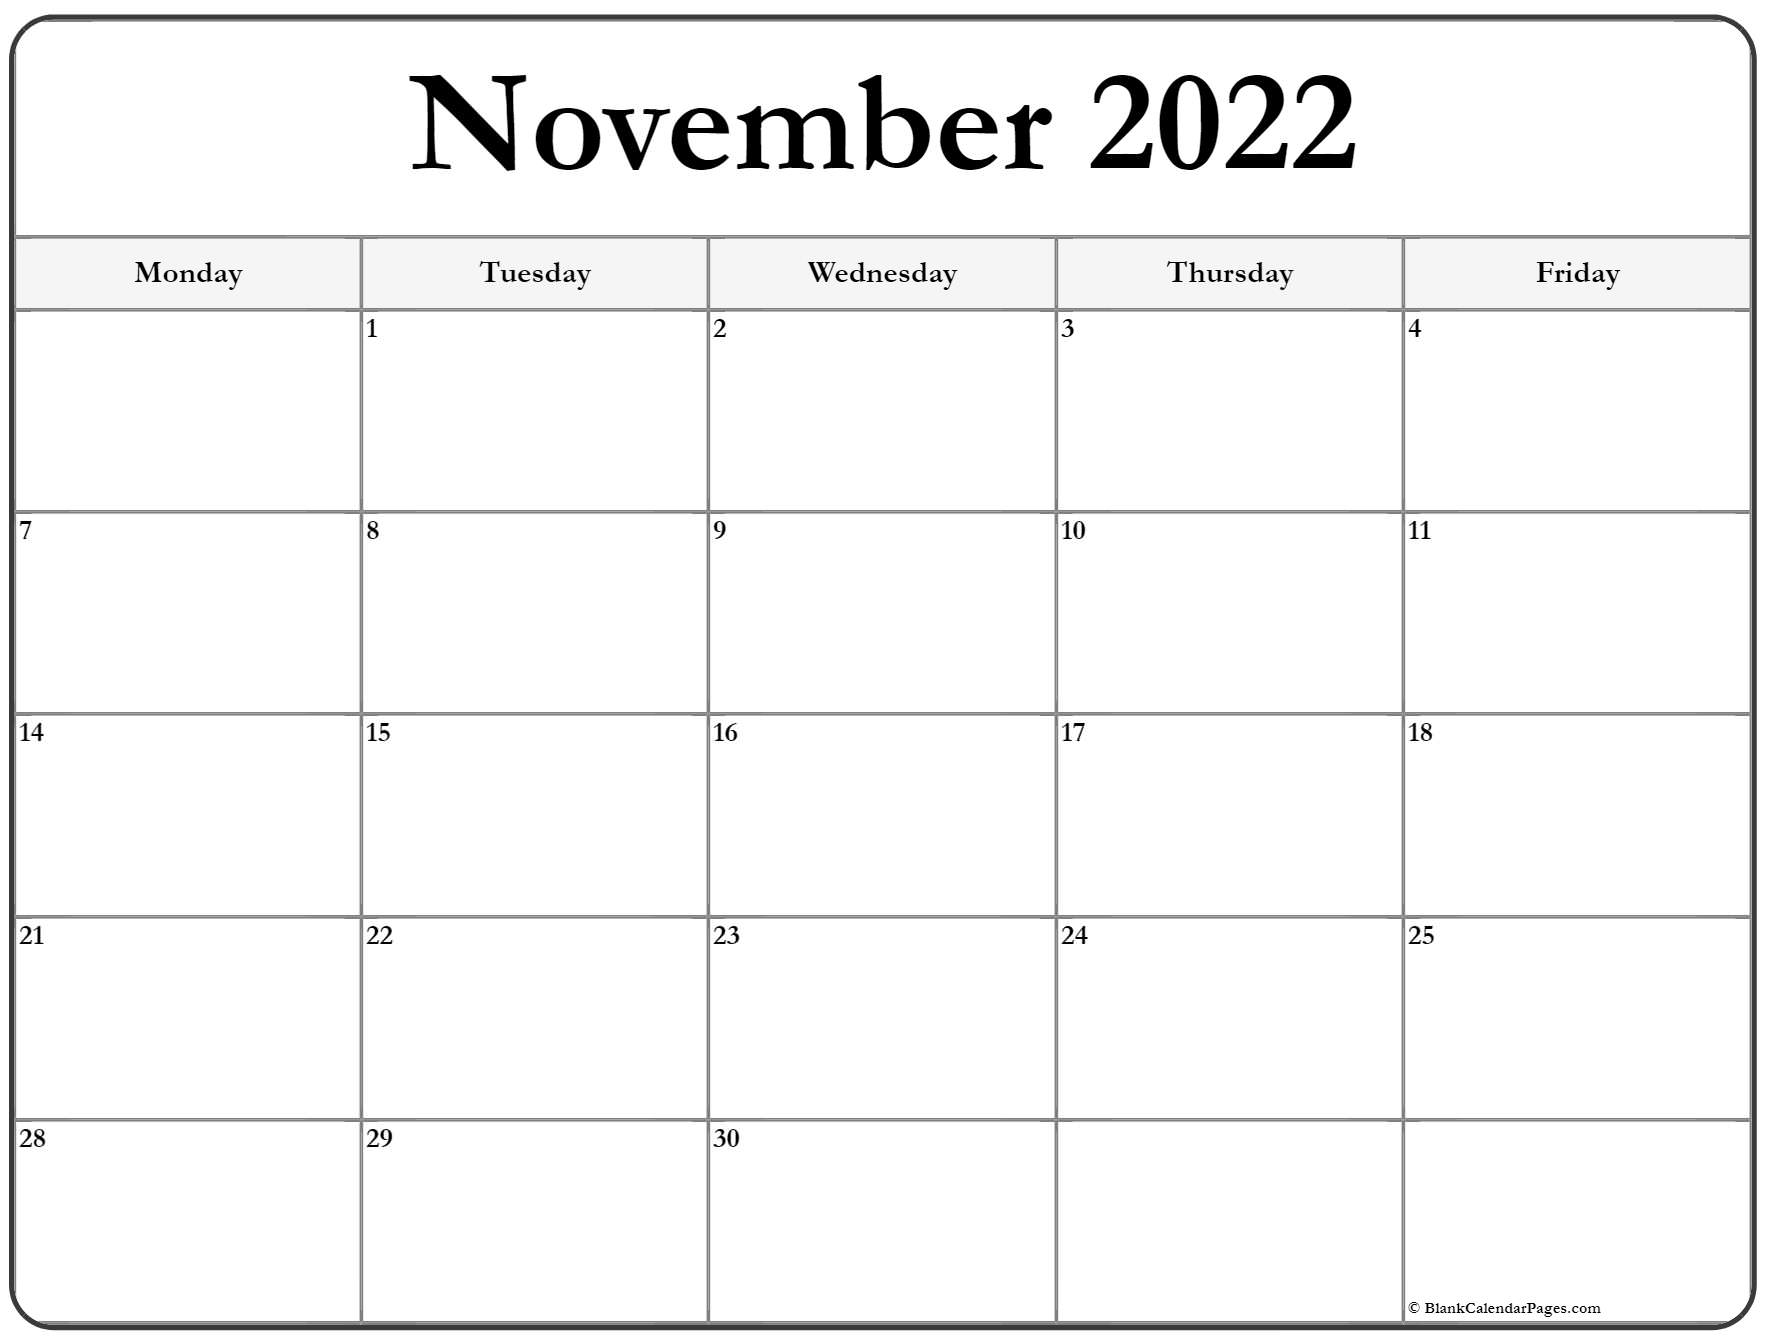 November 2022 Monday Calendar | Monday to Sunday